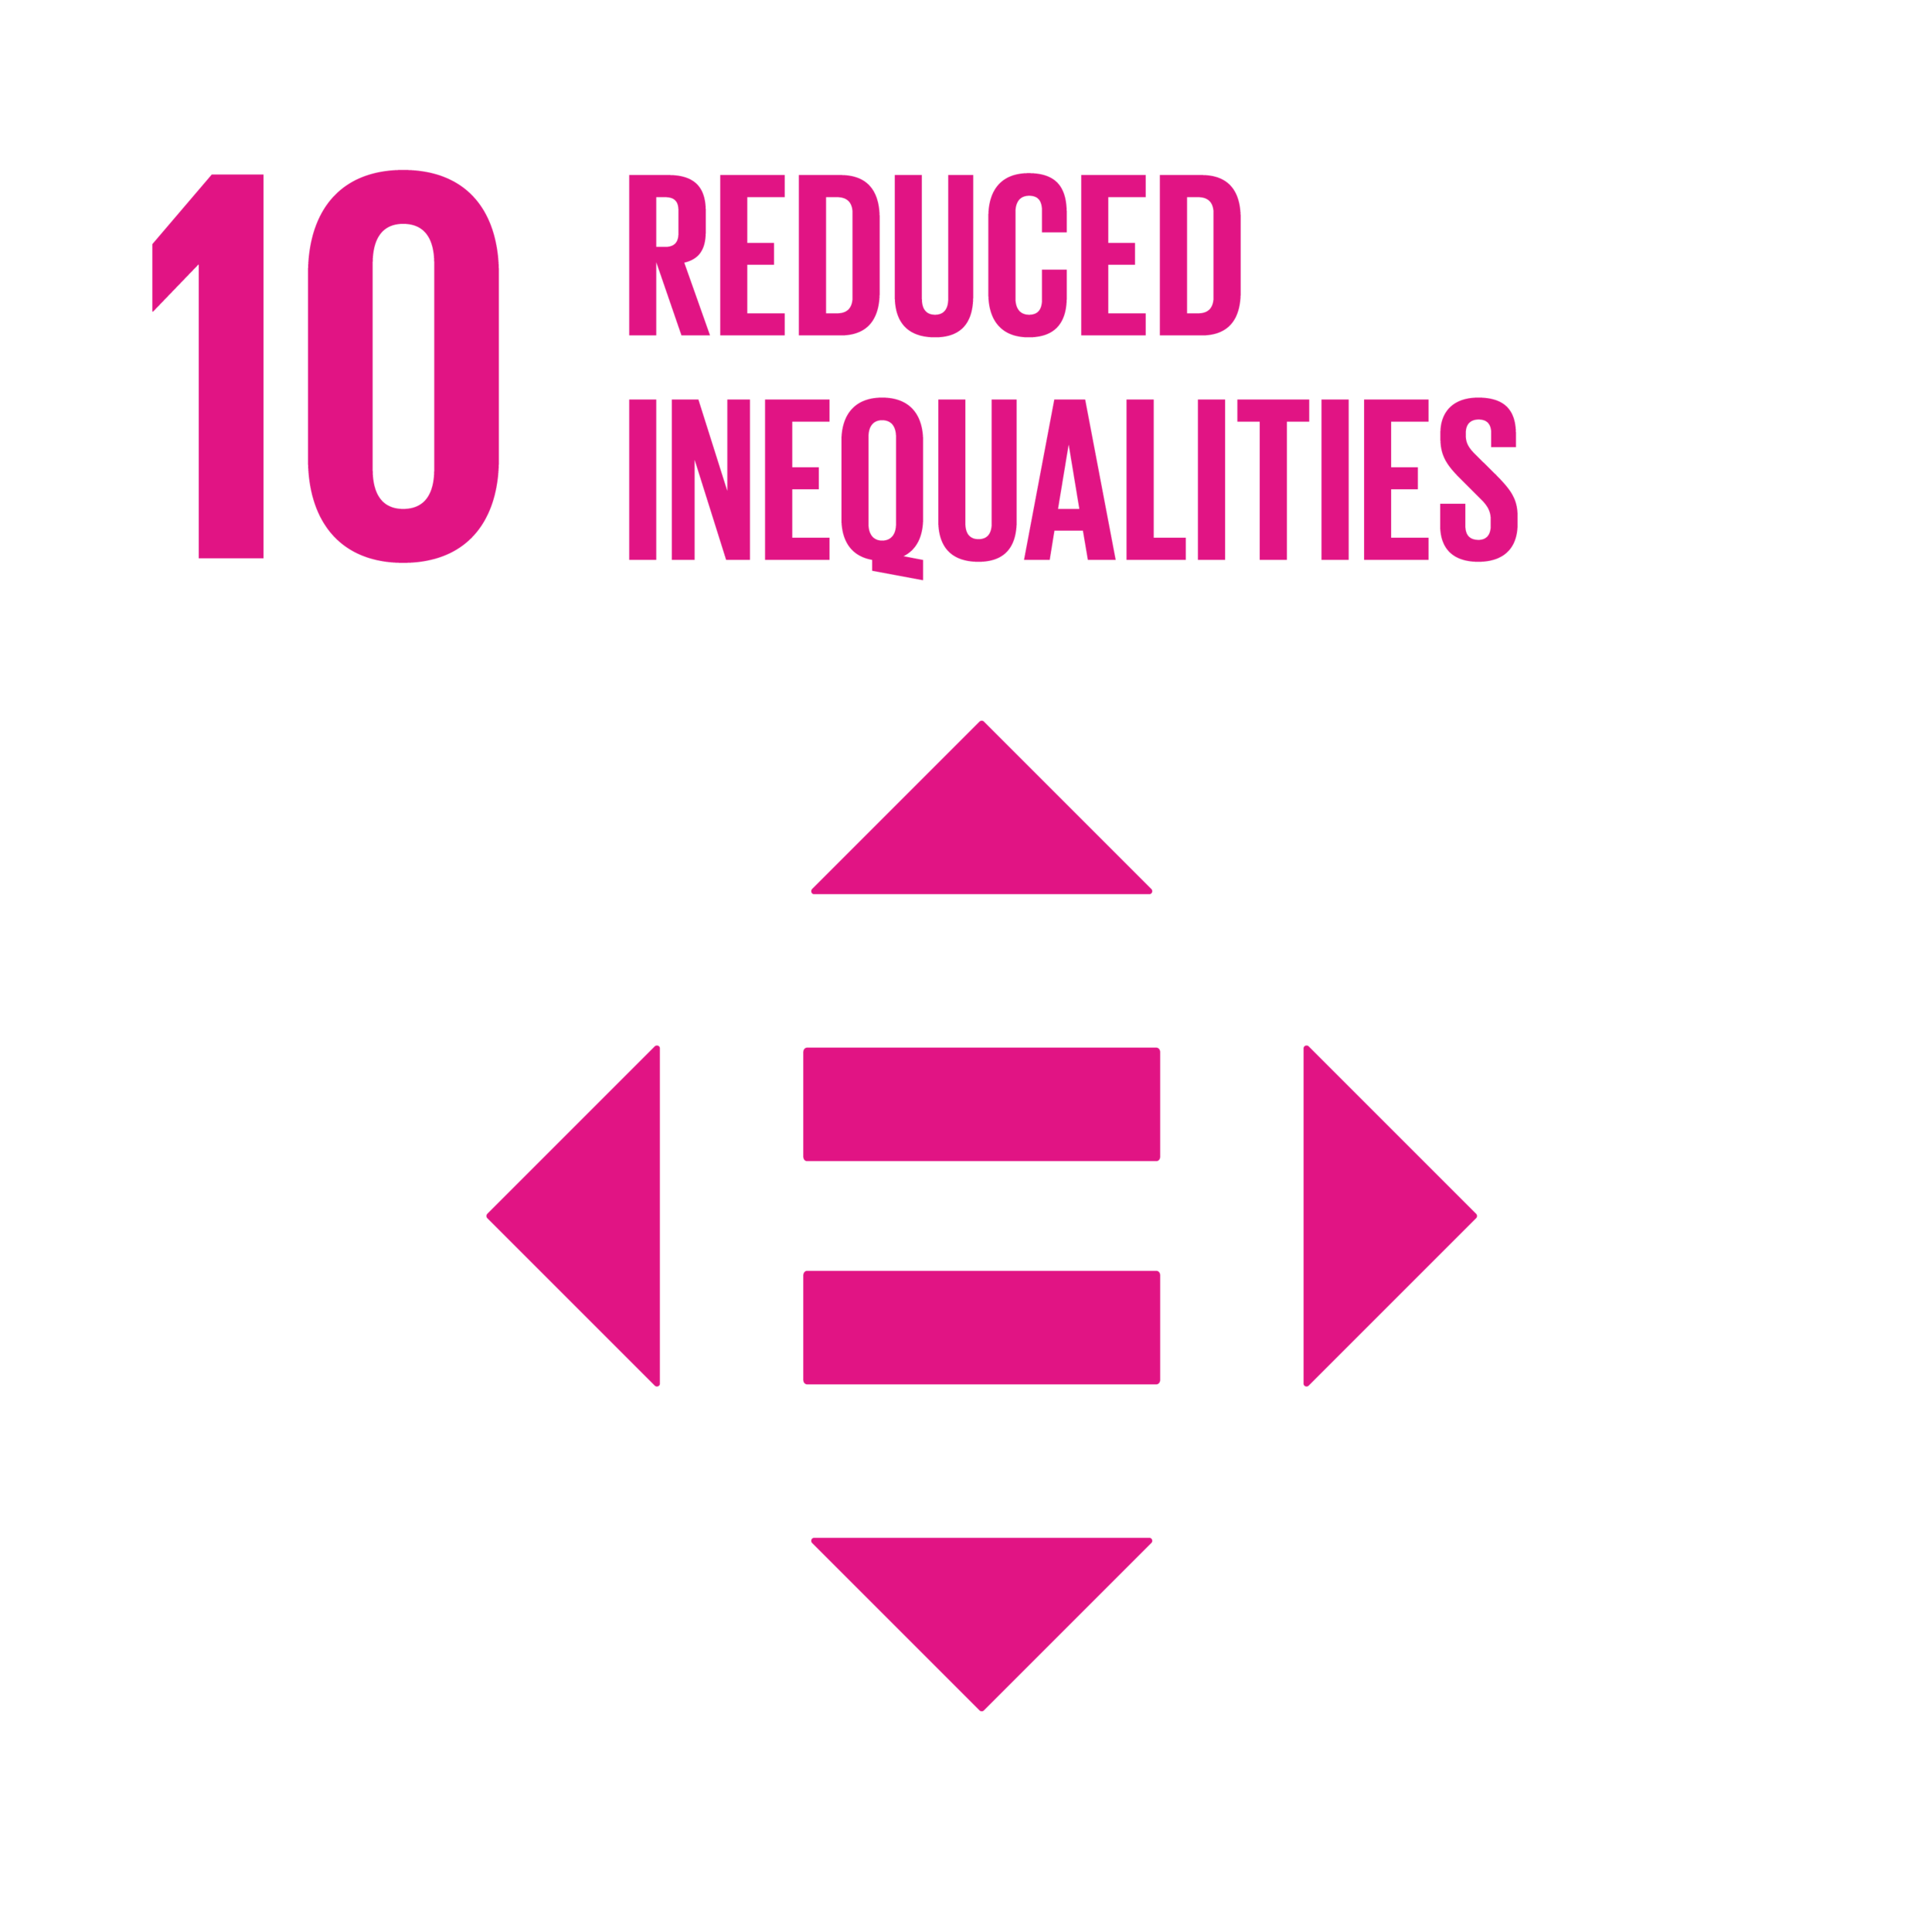 E_INVERTED SDG goals_icons-individual-RGB-15.png